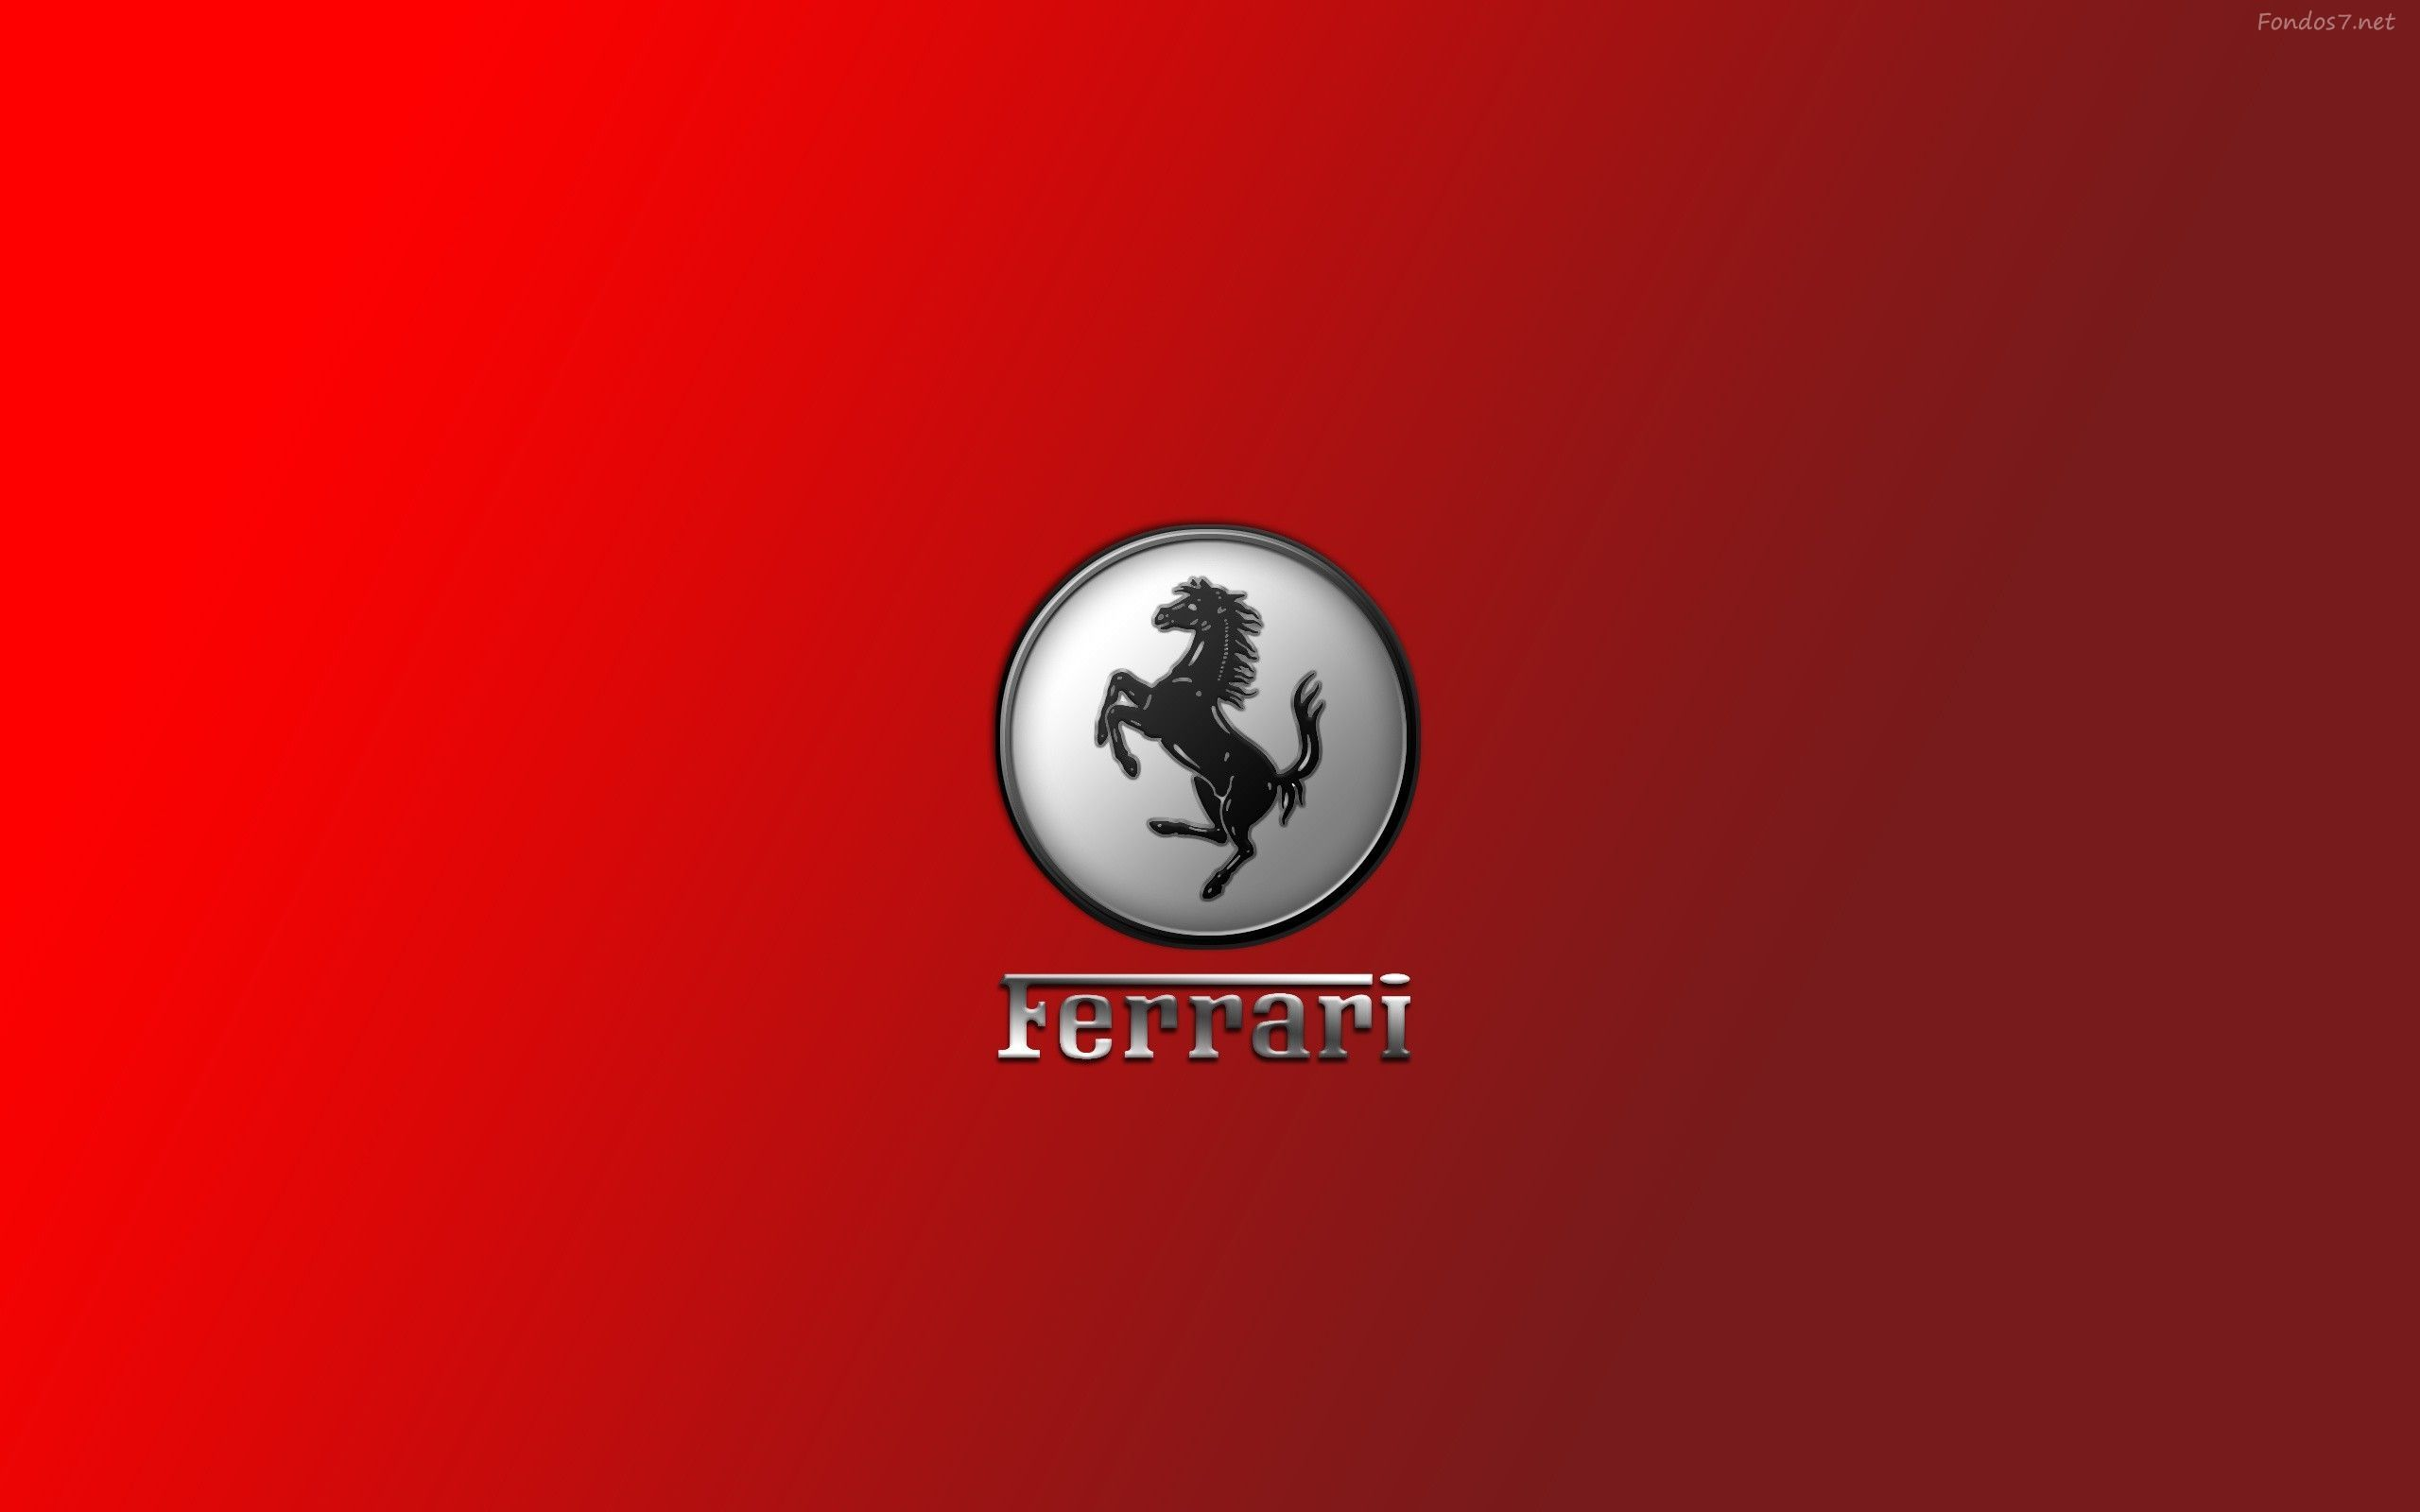 ferrari wallpapers logo high definition for widescreen wallpaper